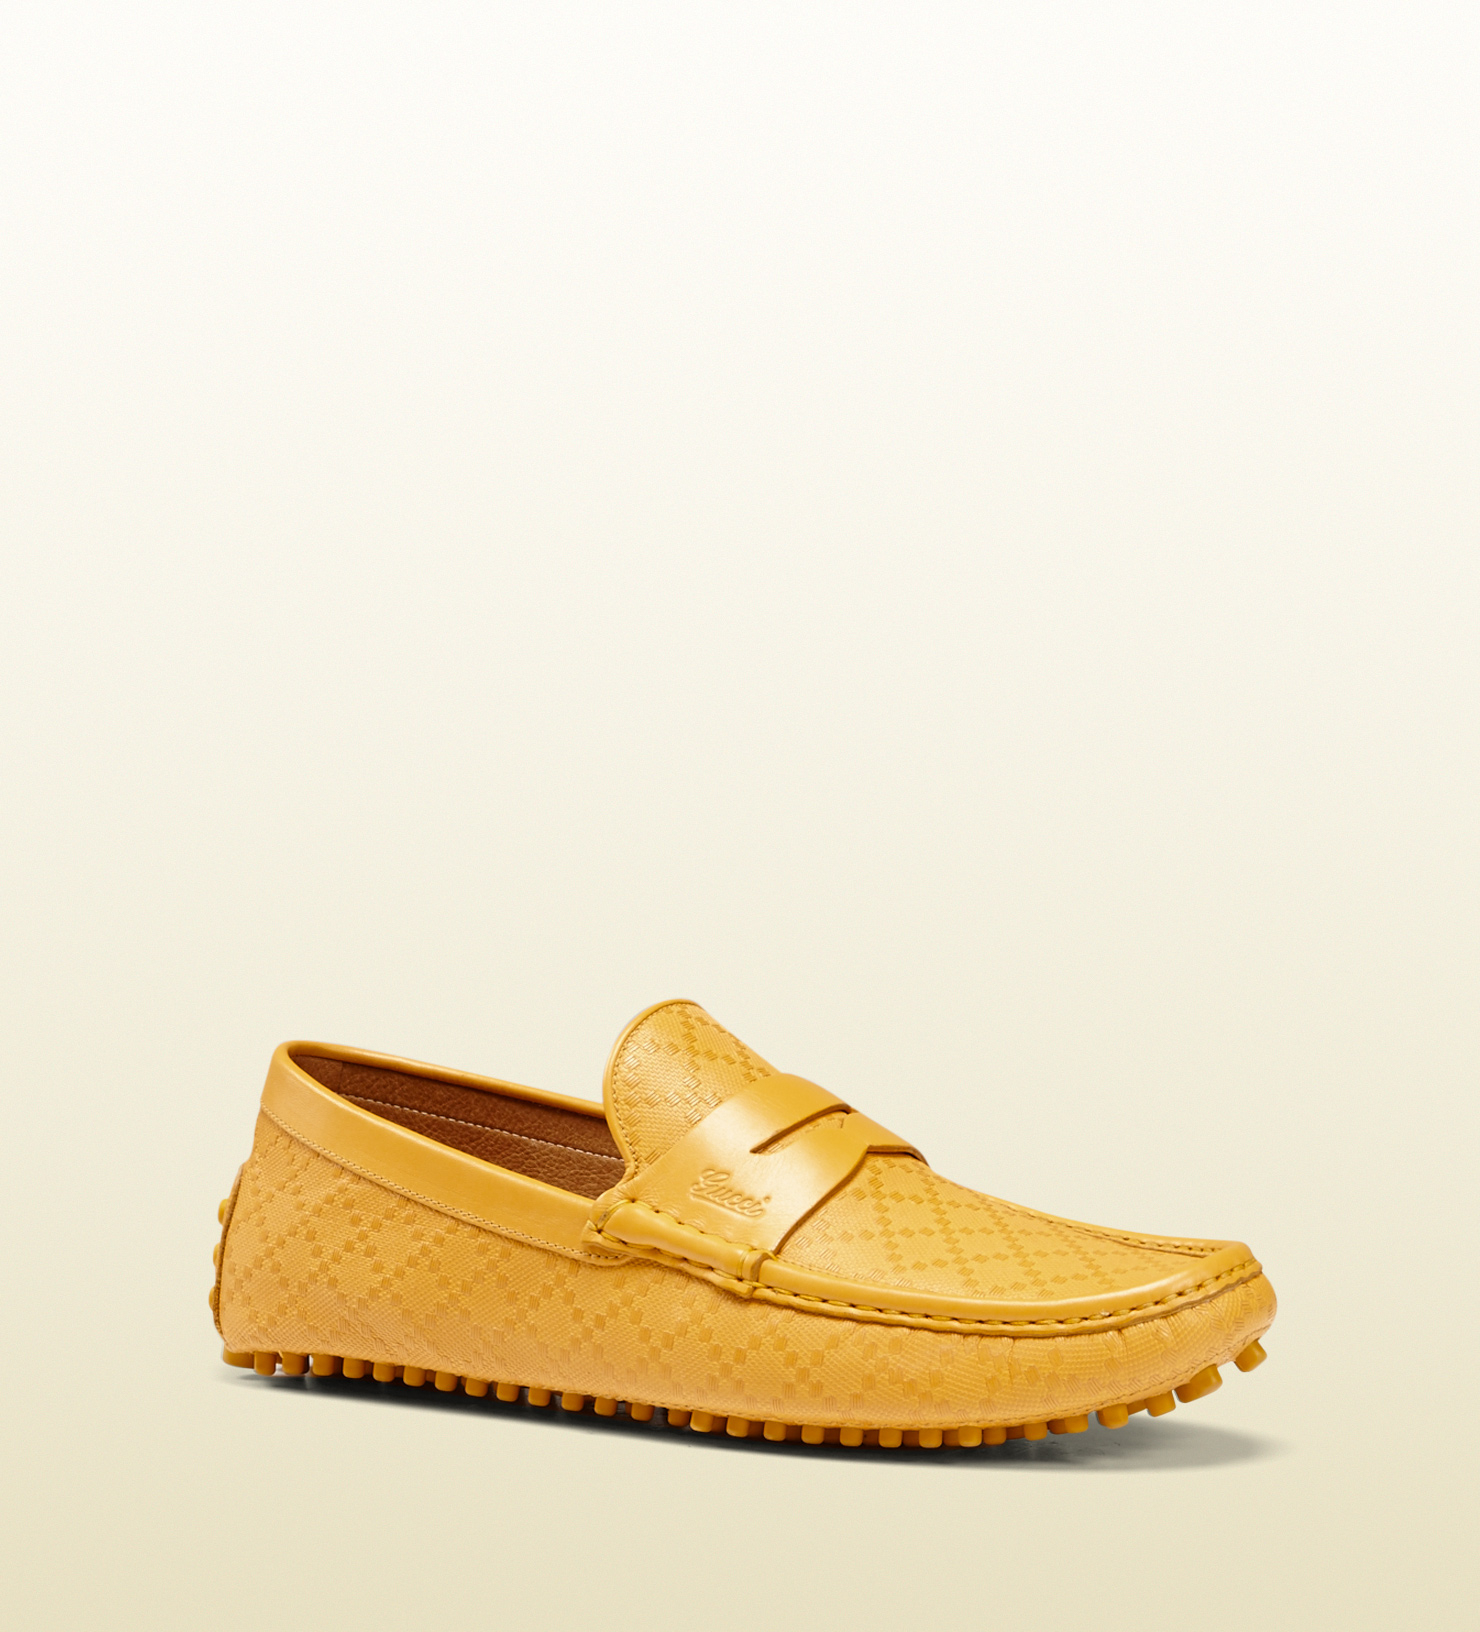 fbecfdaa5b0 Lyst - Gucci Diamante Leather Pebbled Sole Driver in Yellow for Men